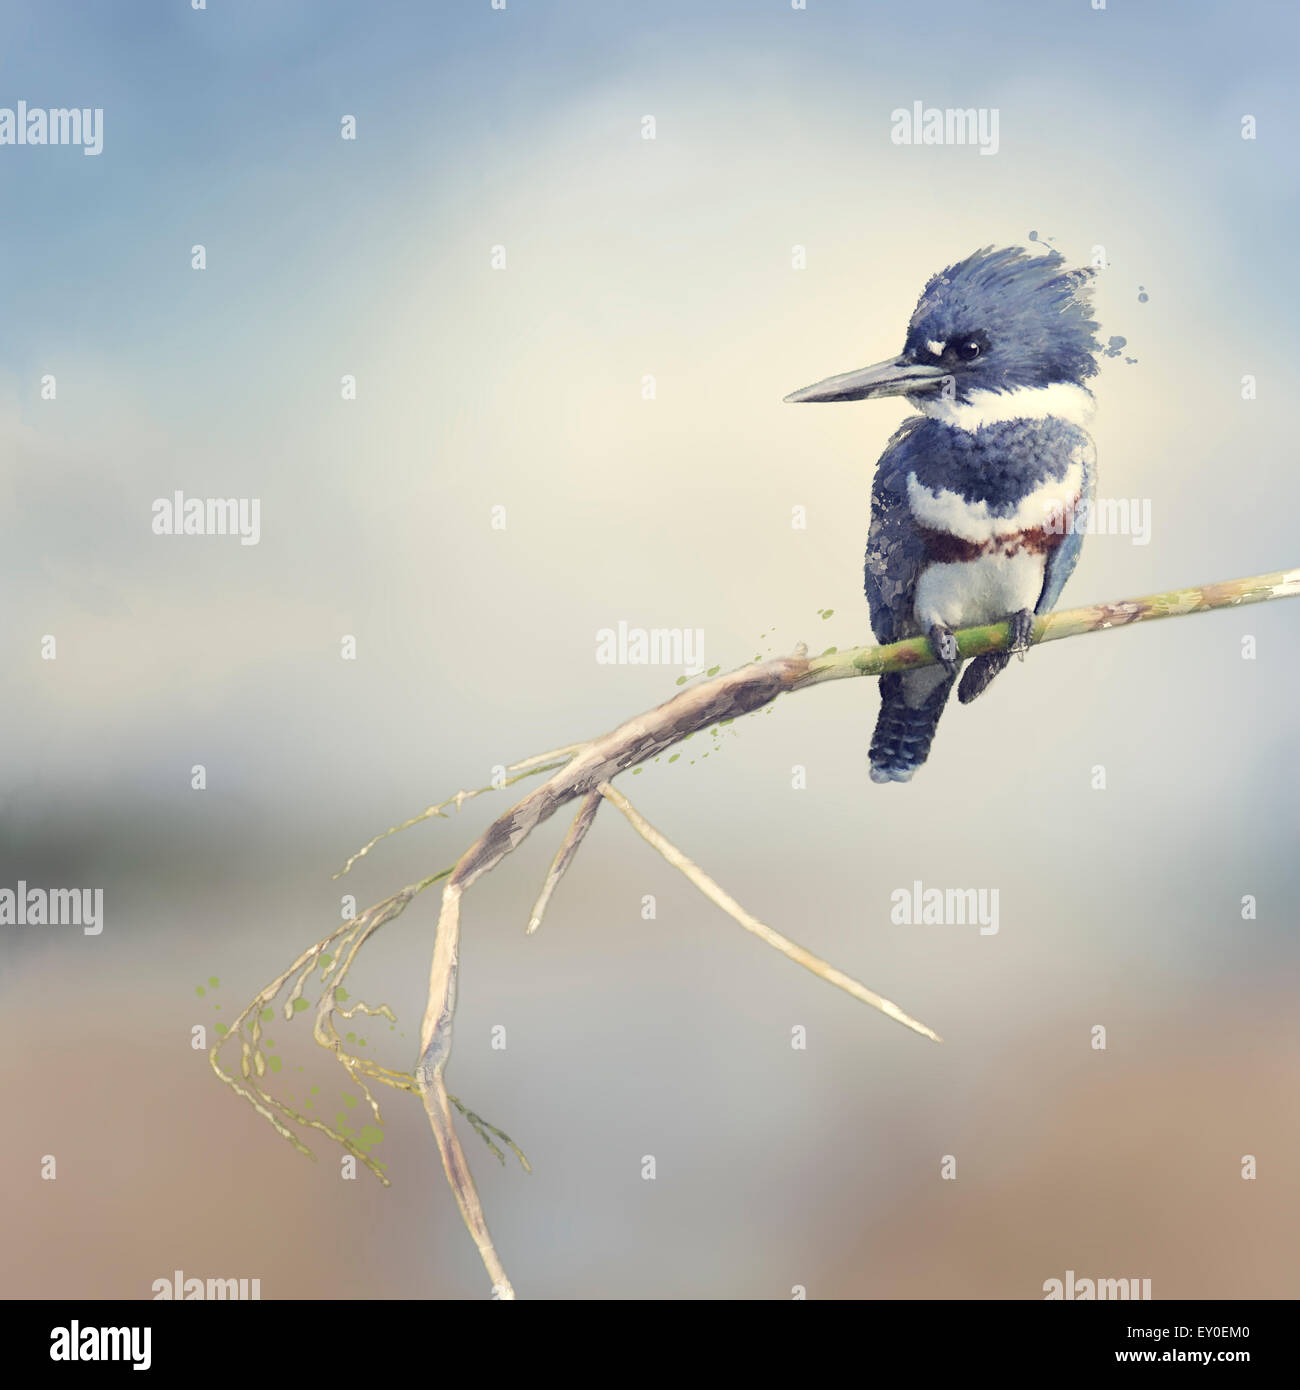 Digital Painting Of Belted Kingfisher - Stock Image